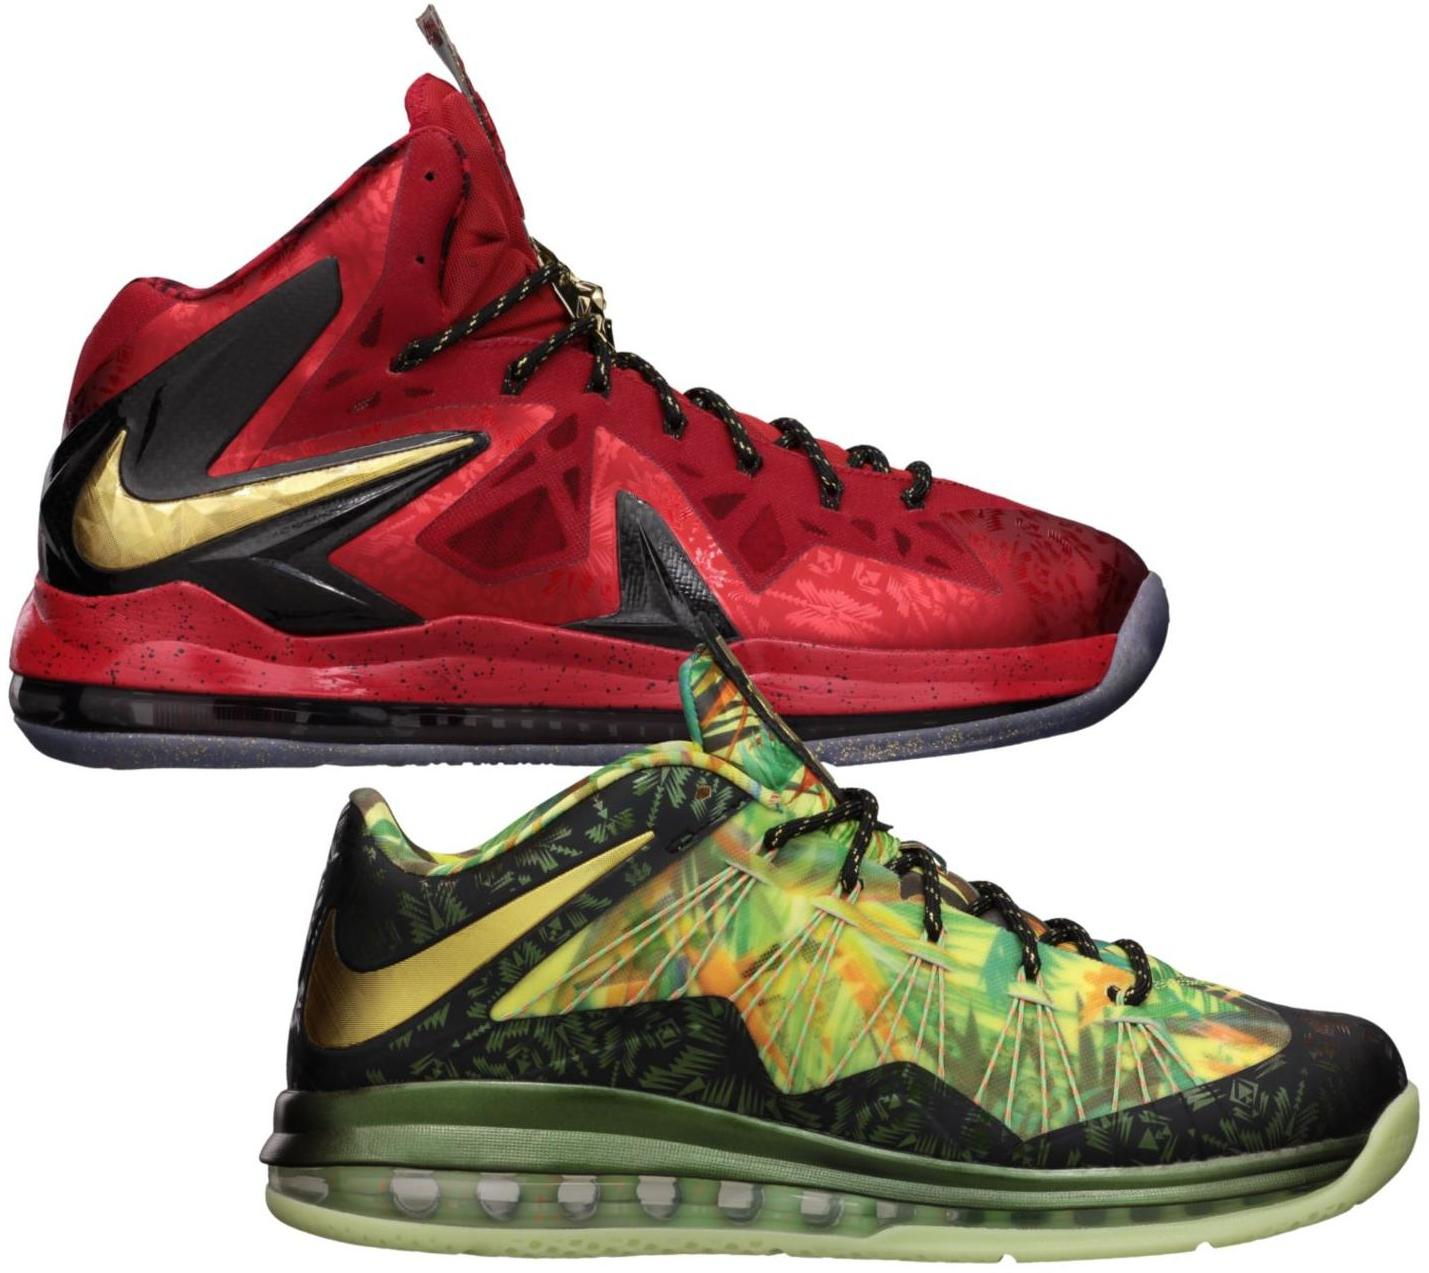 98836a5bc0a9 ... coupon code for buy nike lebron shoes deadstock sneakers ad726 0eaf8